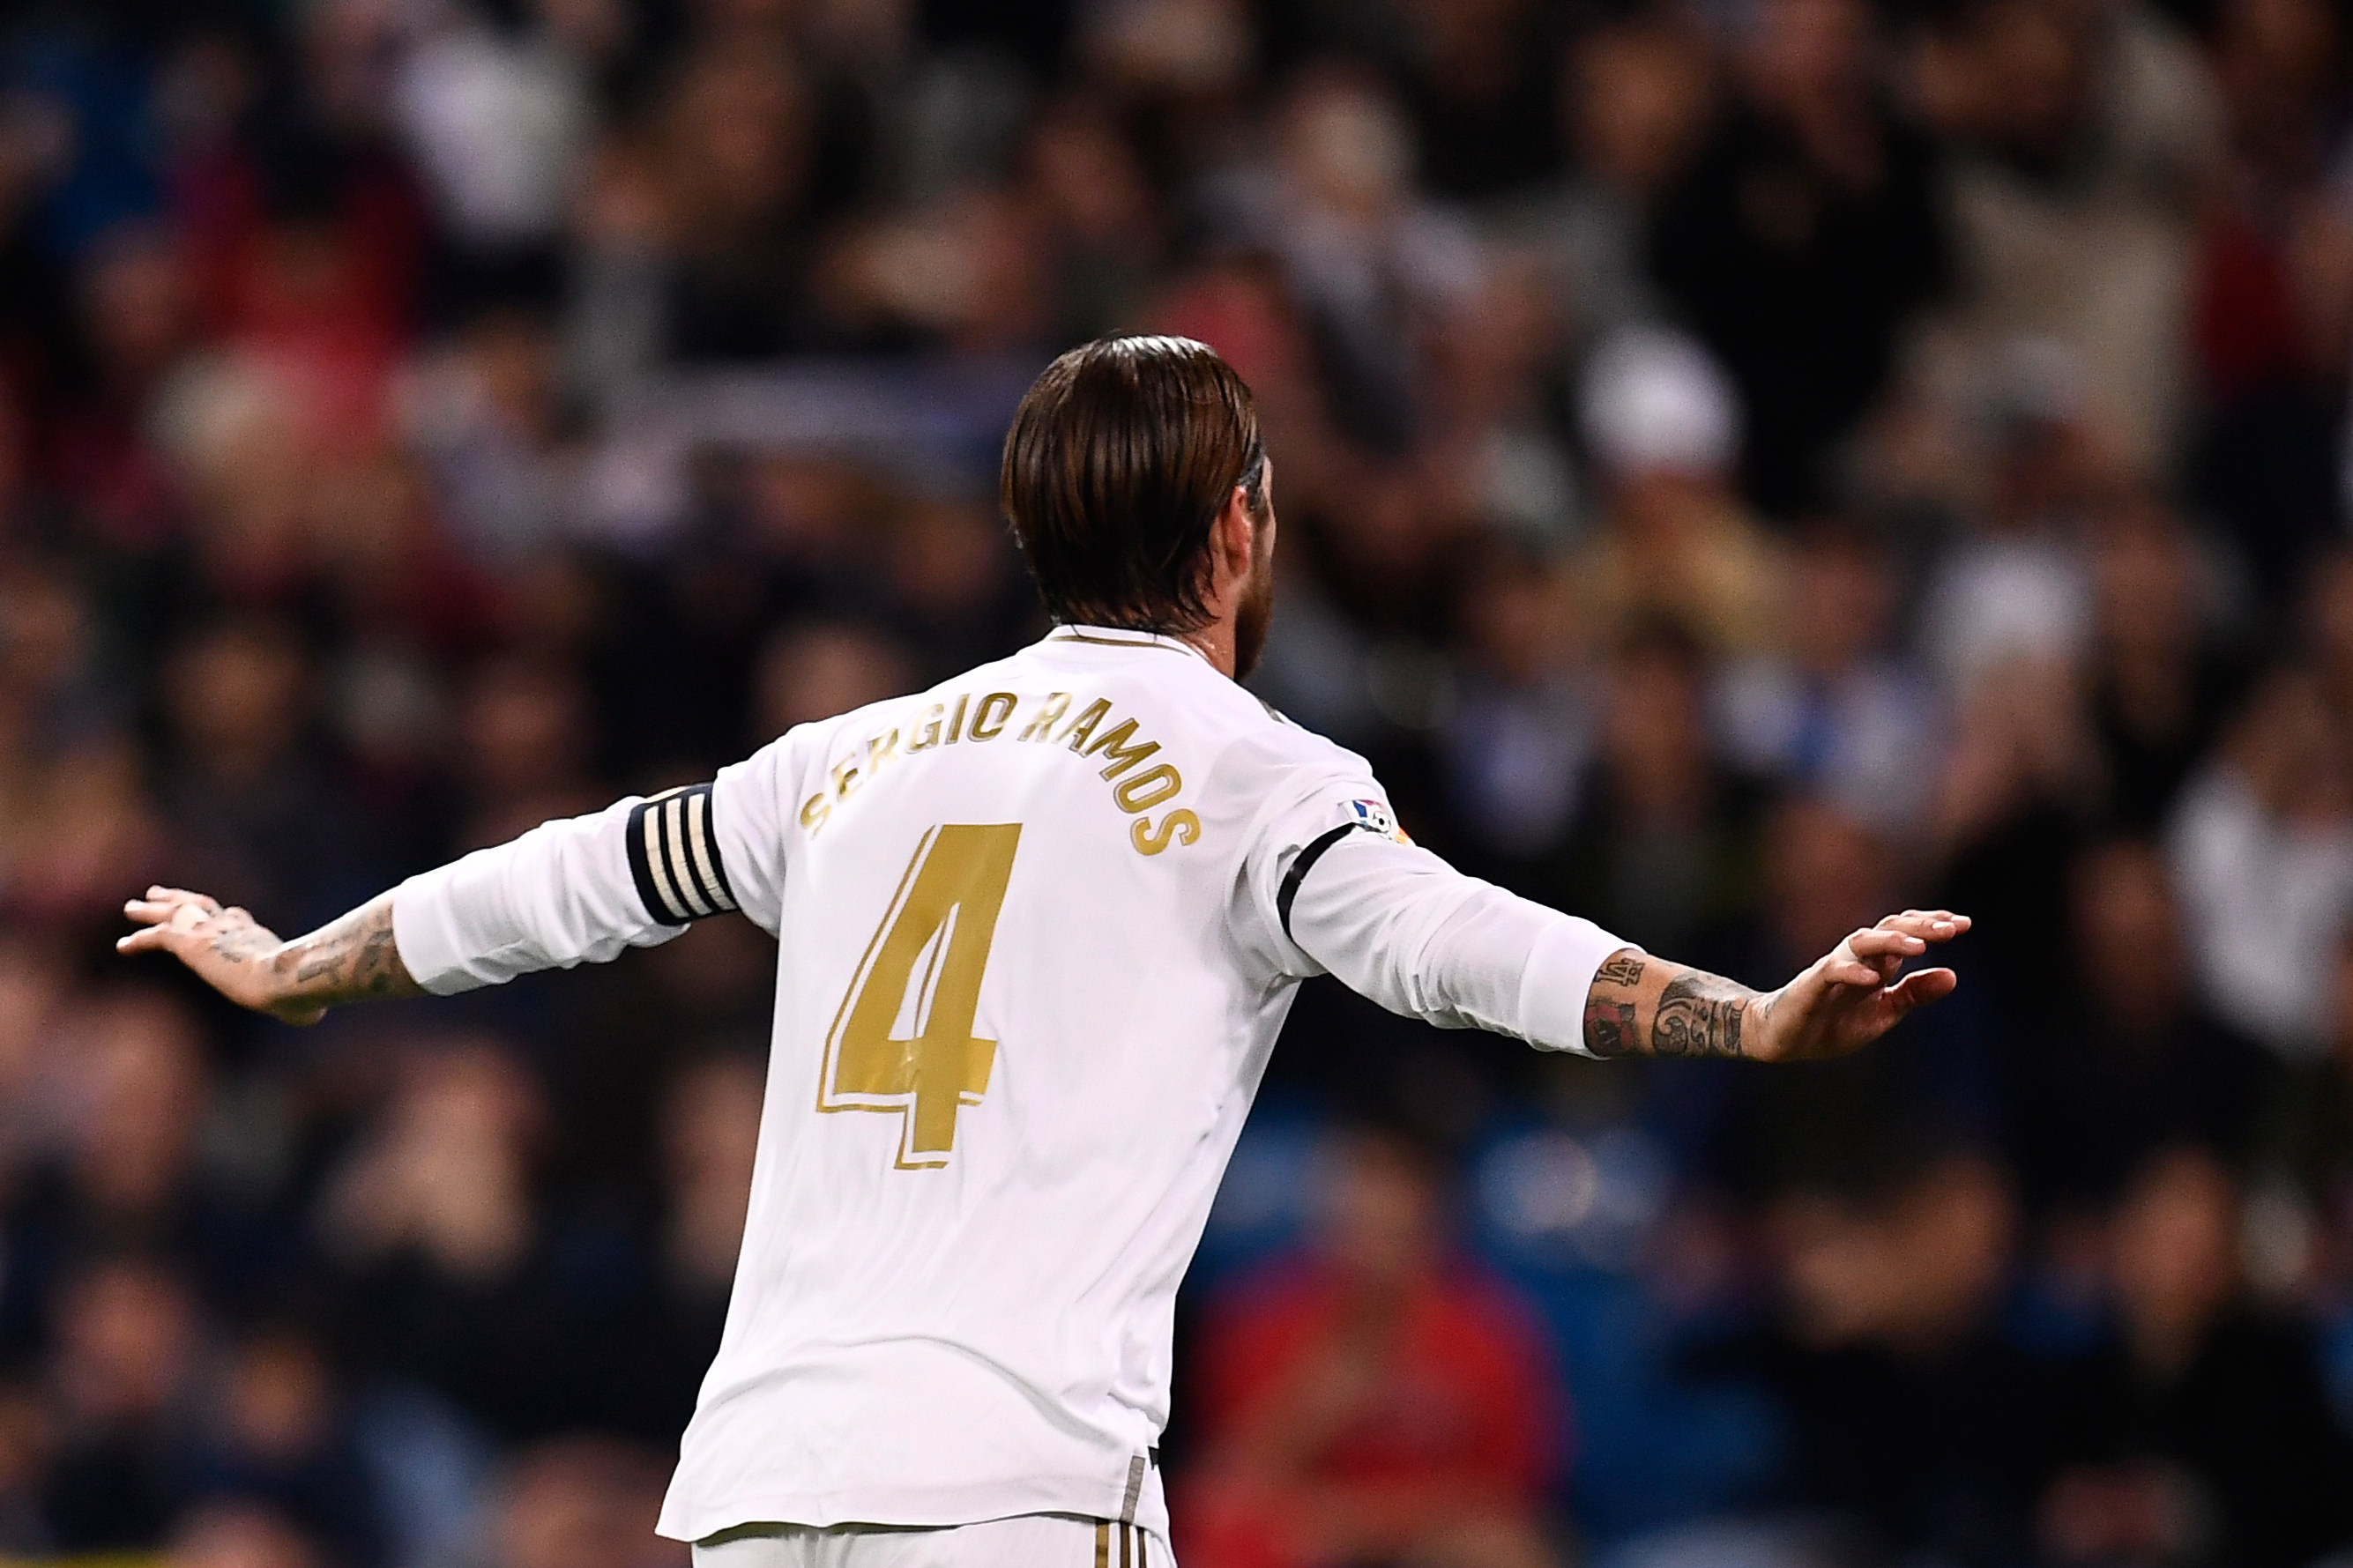 Ramos scored a penalty (Photo by OSCAR DEL POZO/AFP via Getty Images)